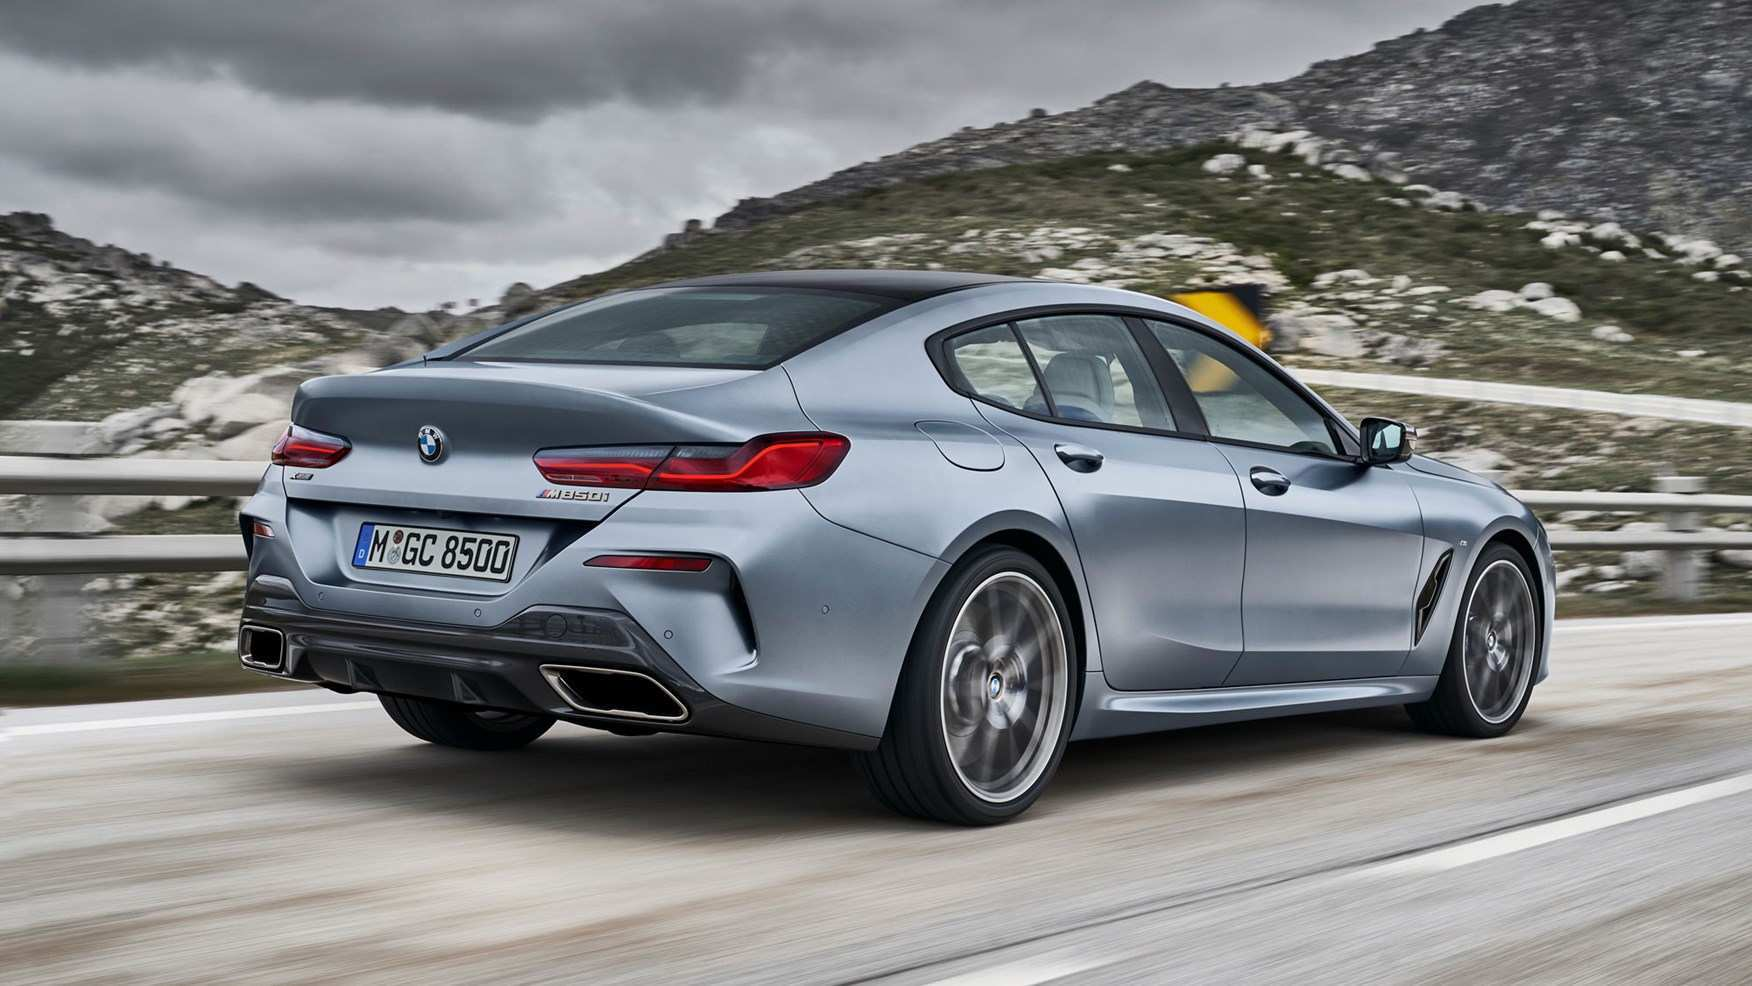 22 A 2020 Bmw 850I Price And Release Date